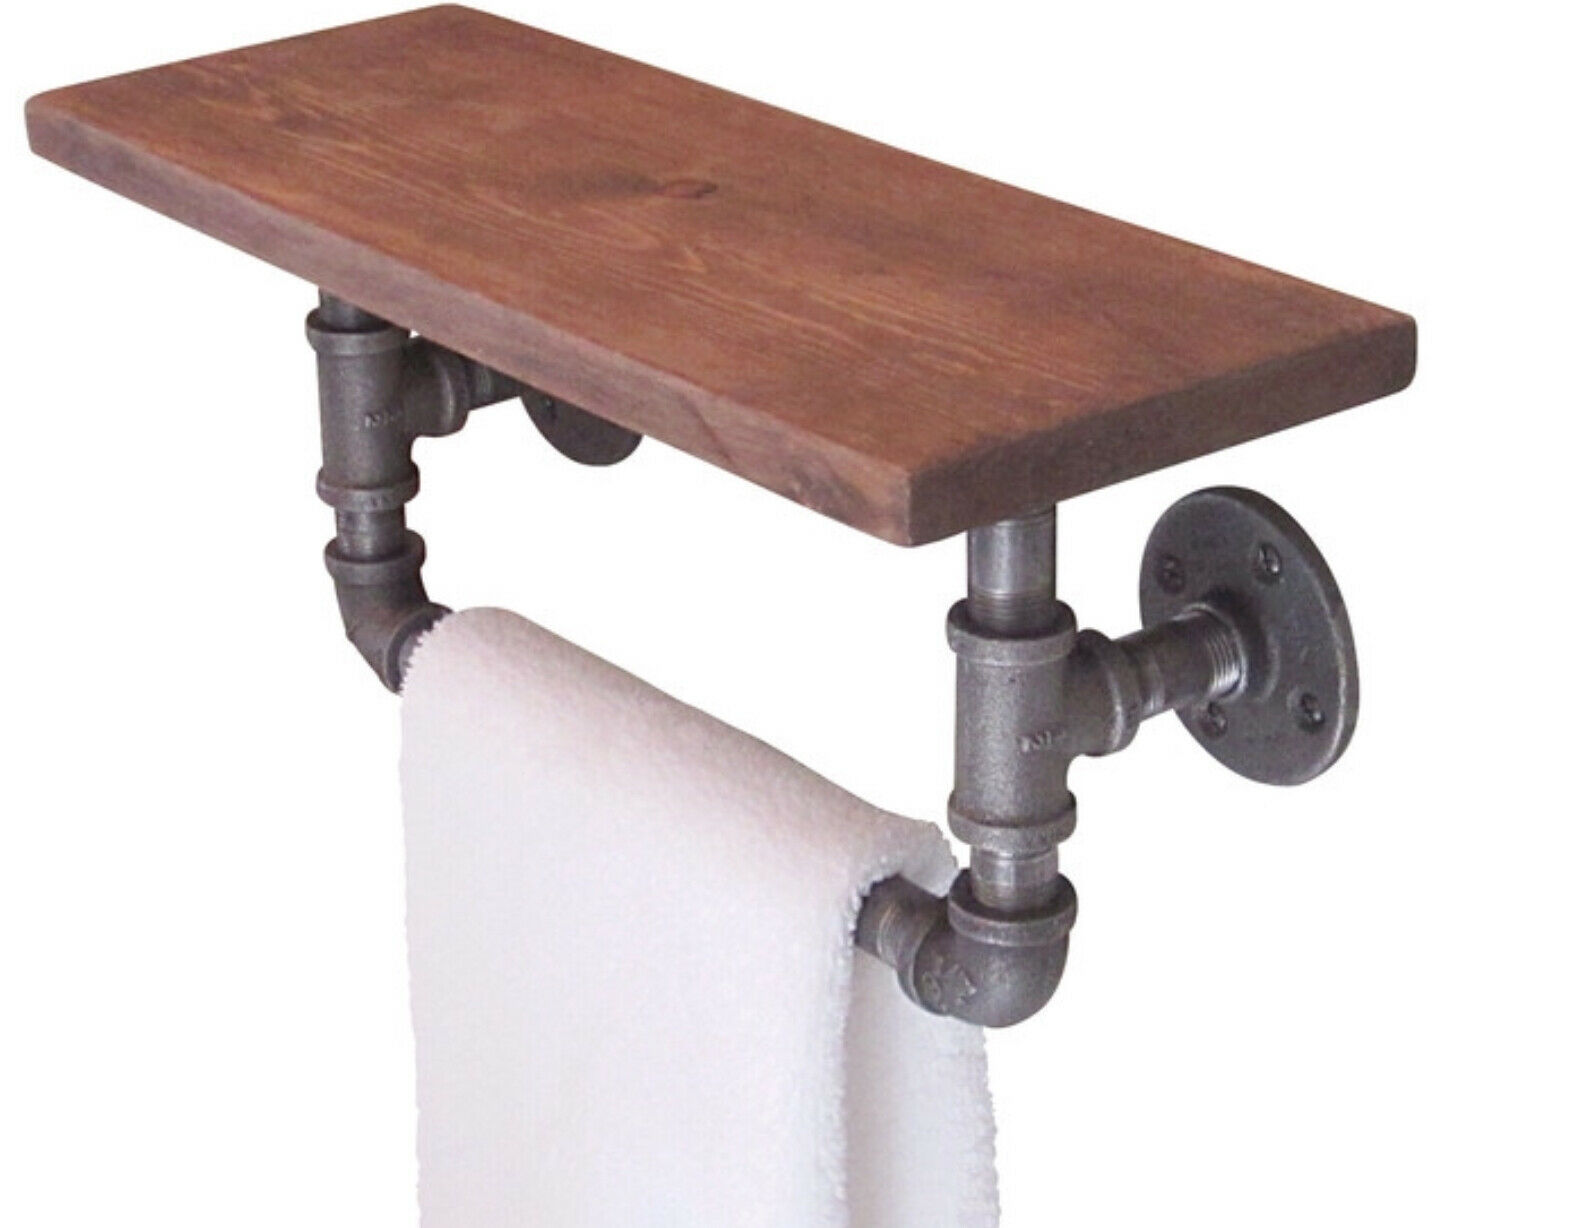 Industrial Pipe Bathroom Hand Towel Rail With A Floating Floating Floating Shelf a30ae5